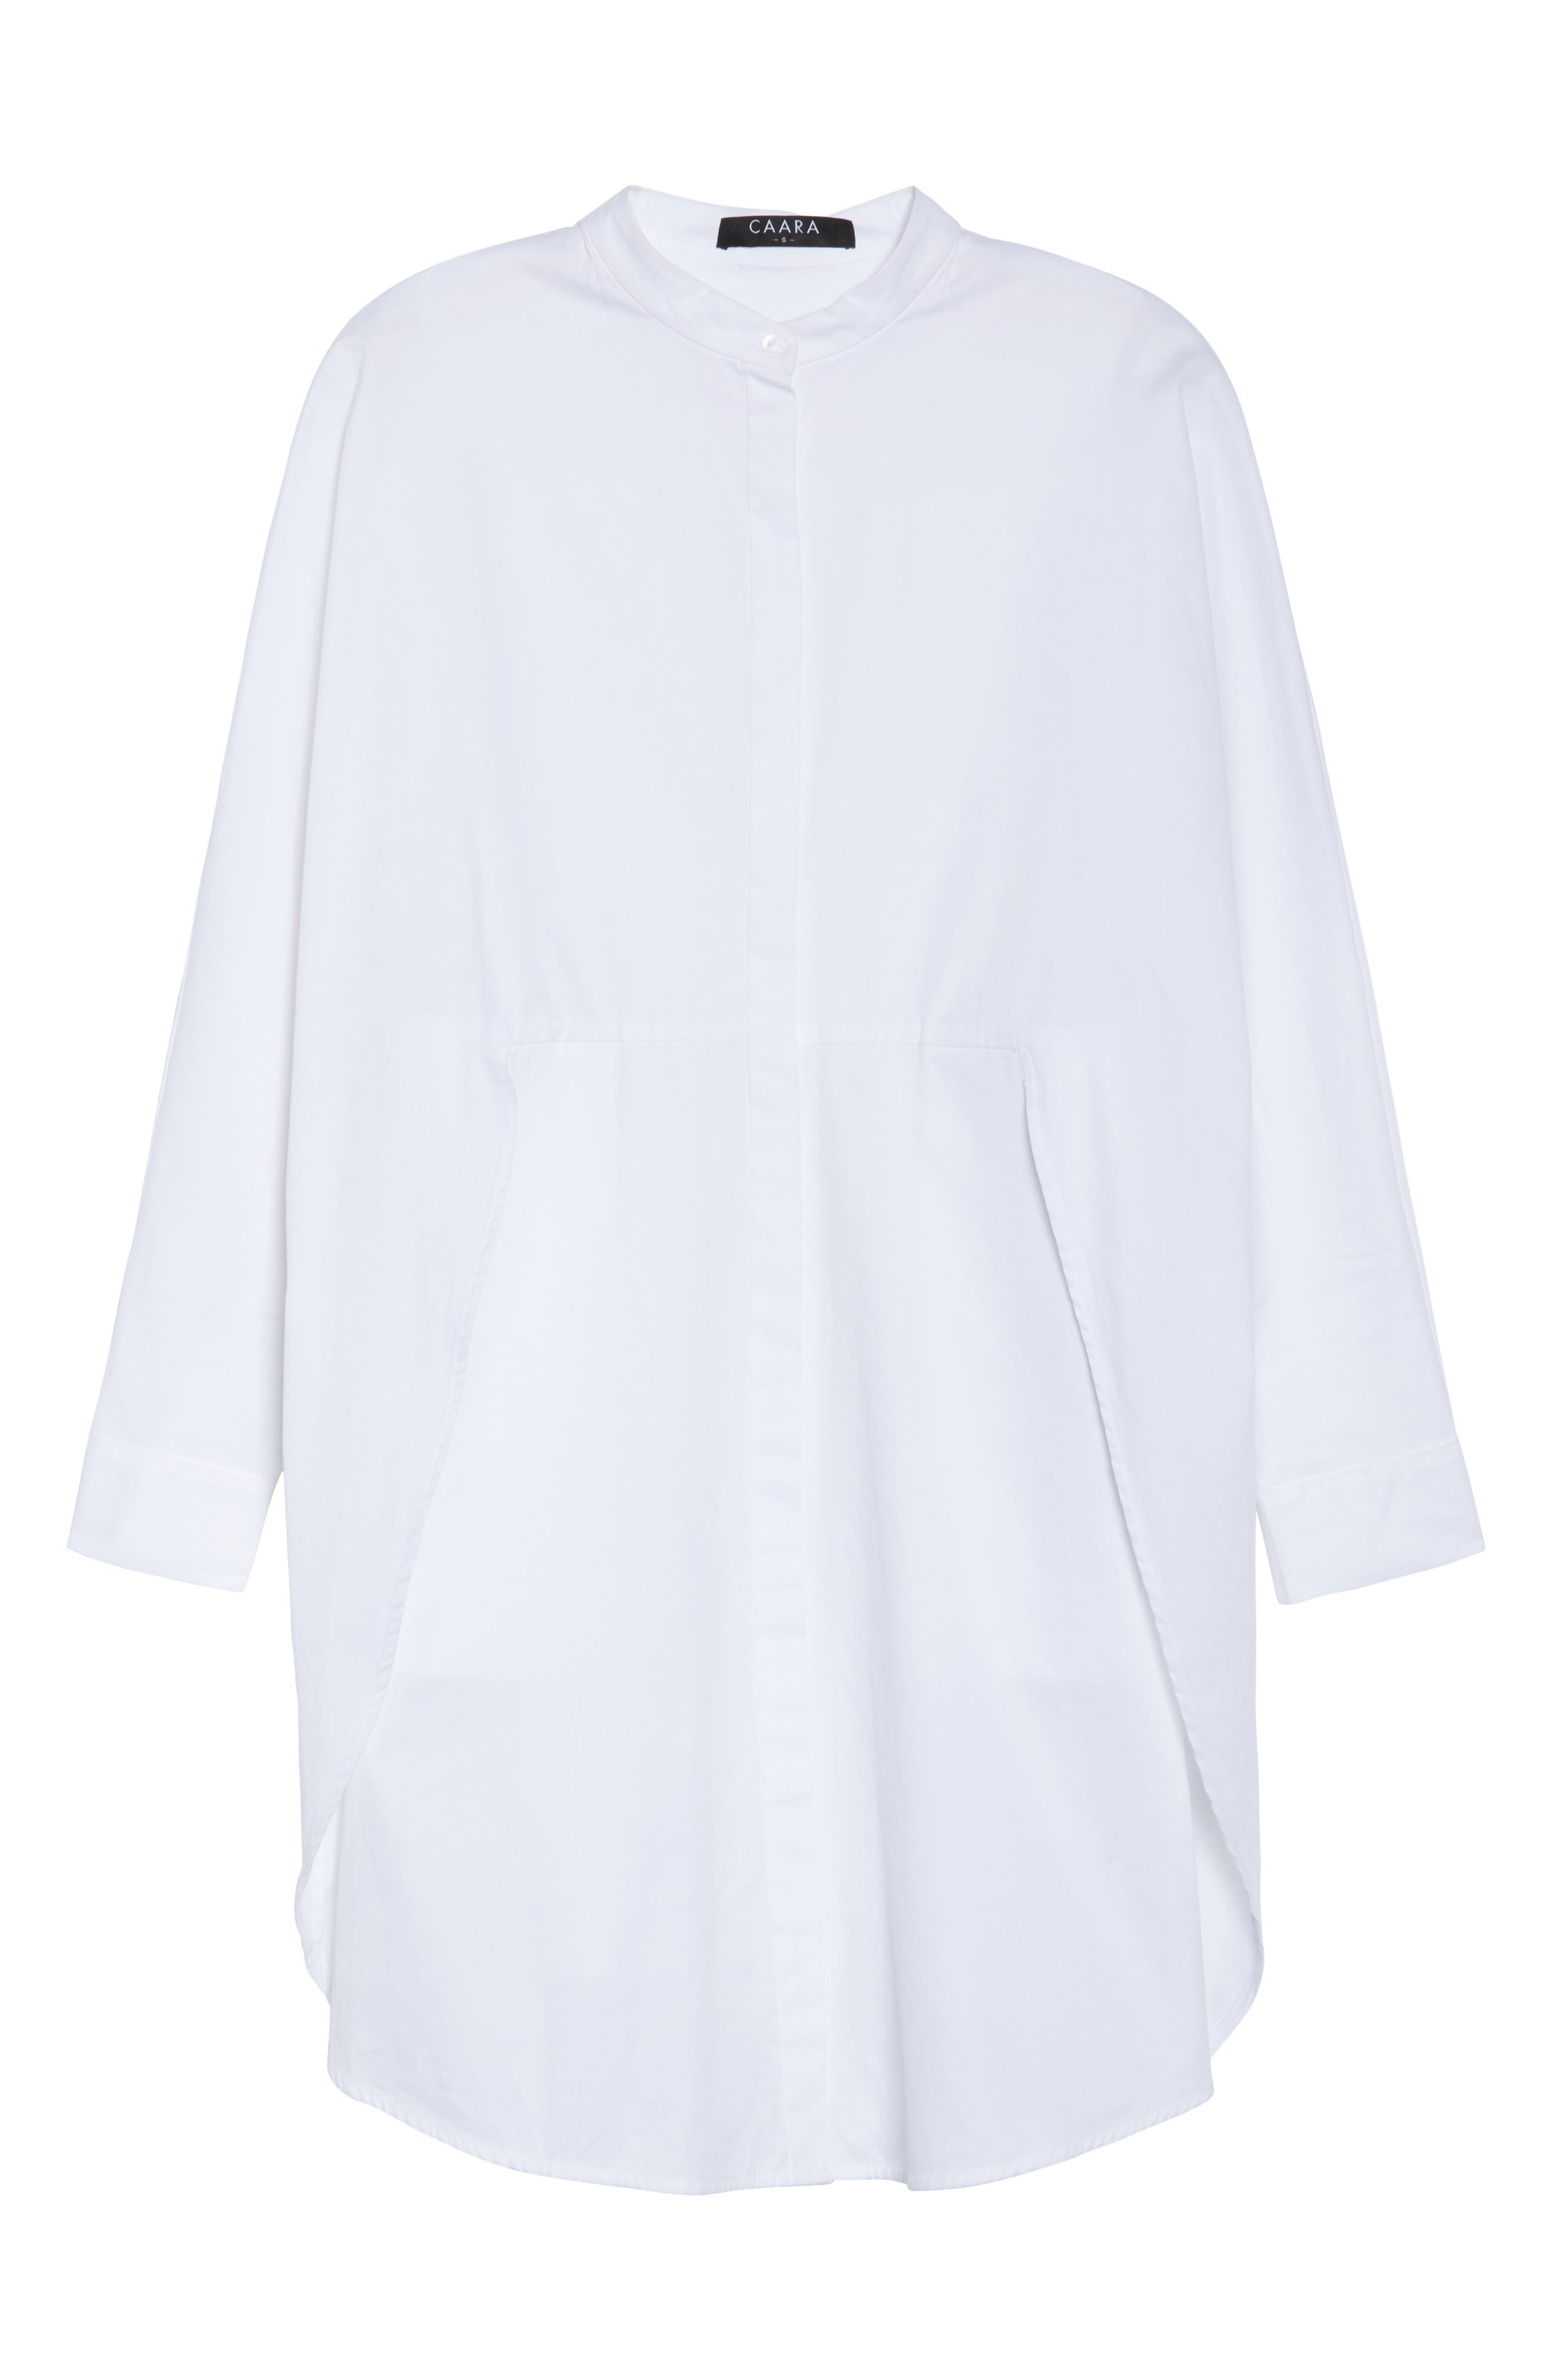 Boyfriend Shirtdress,                             Alternate thumbnail 7, color,                             White